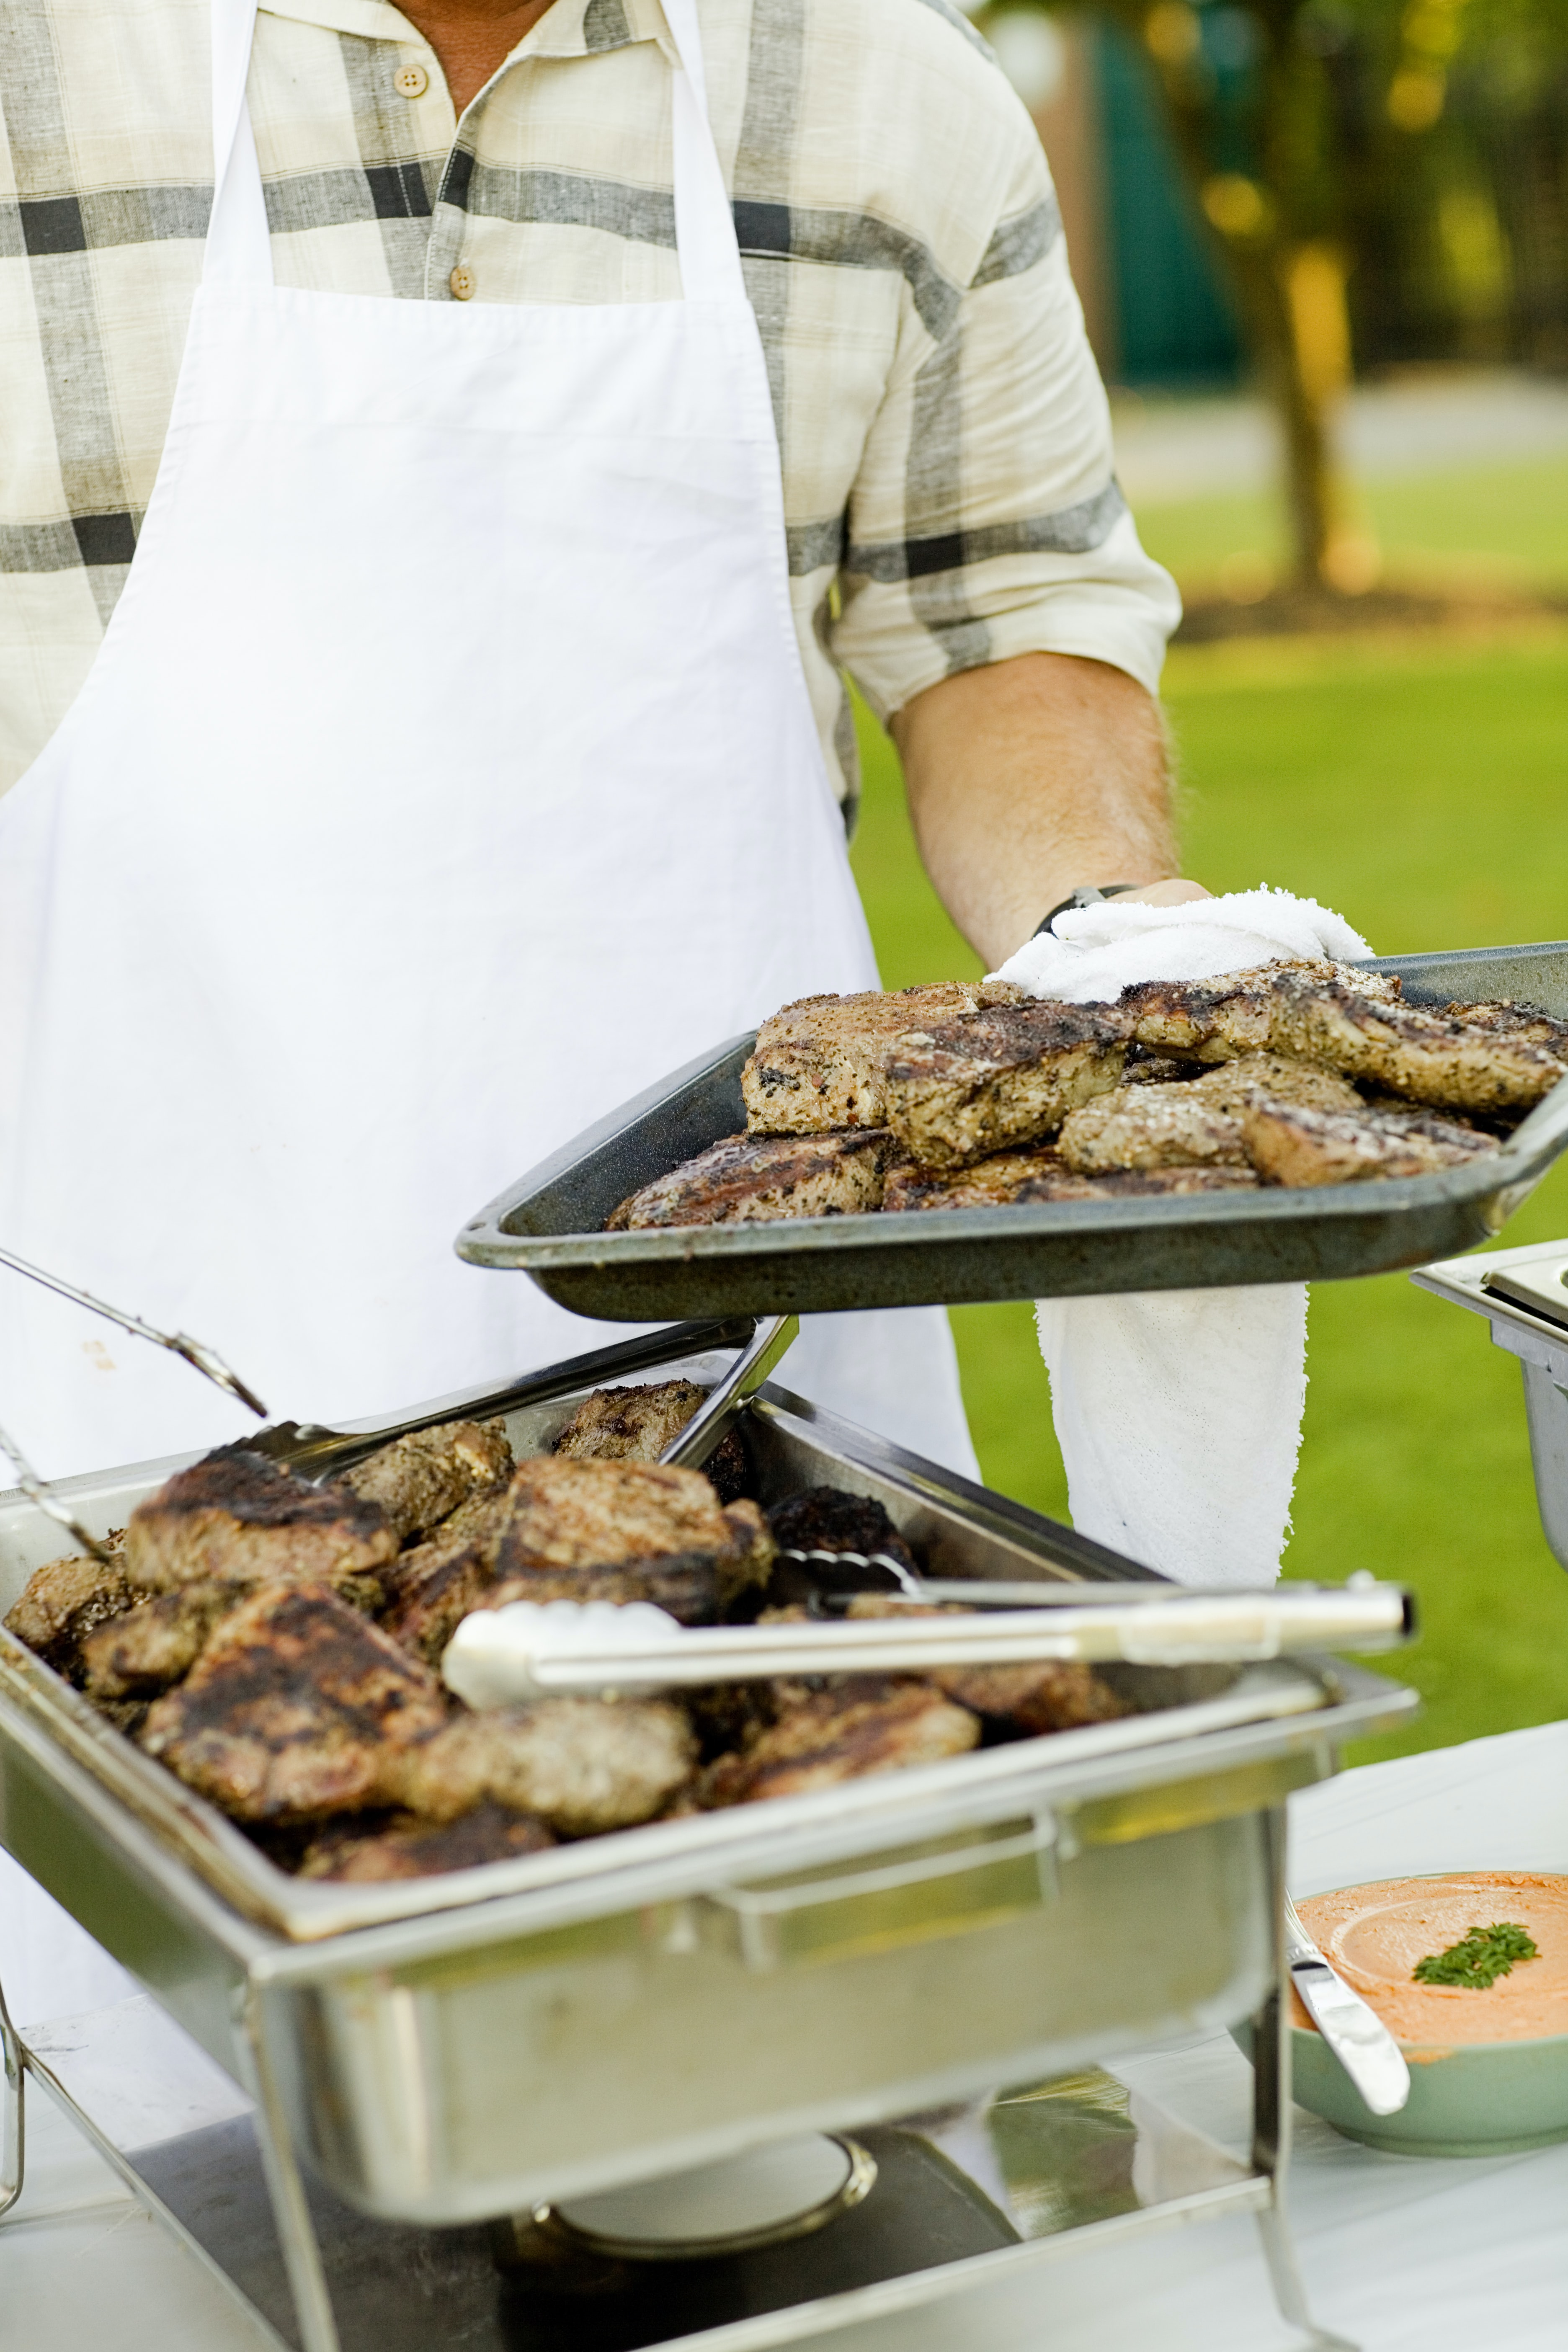 A man wearing a white apron setting up a catering table of BBQ food